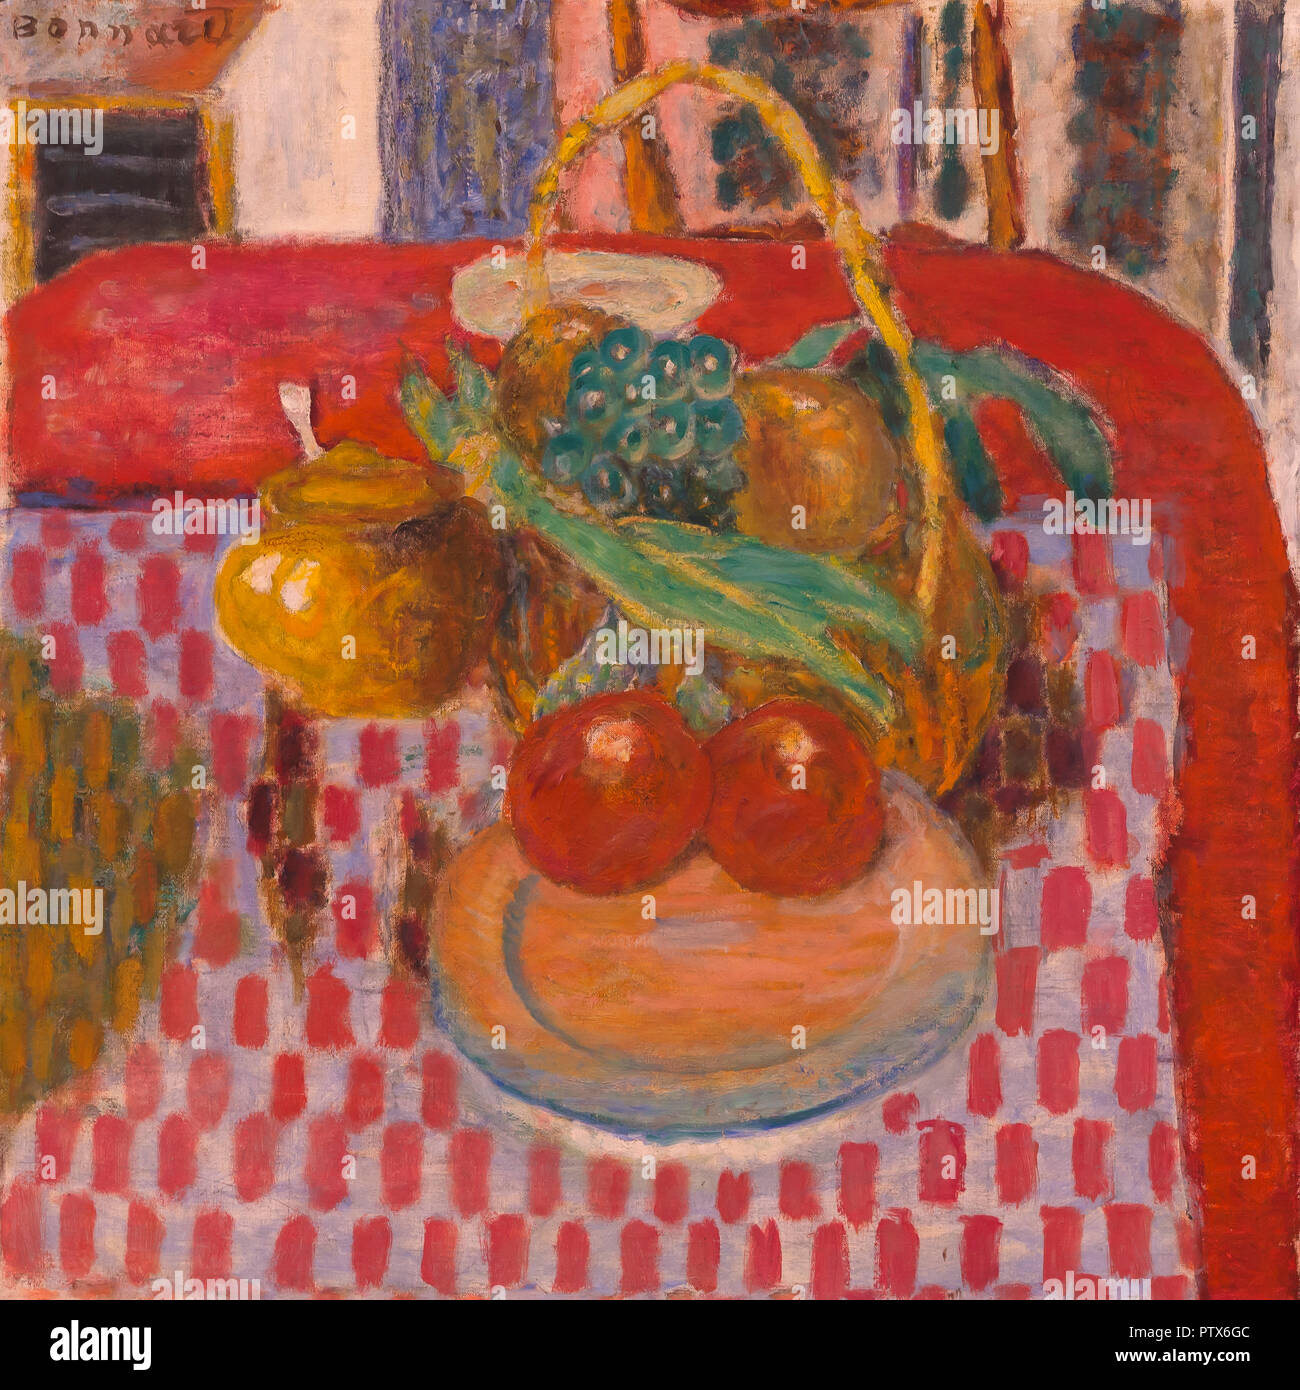 The Checkered Tablecloth, Pierre Bonnard, 1939, Art Institute of Chicago, Chicago, Illinois, USA, North America - Stock Image